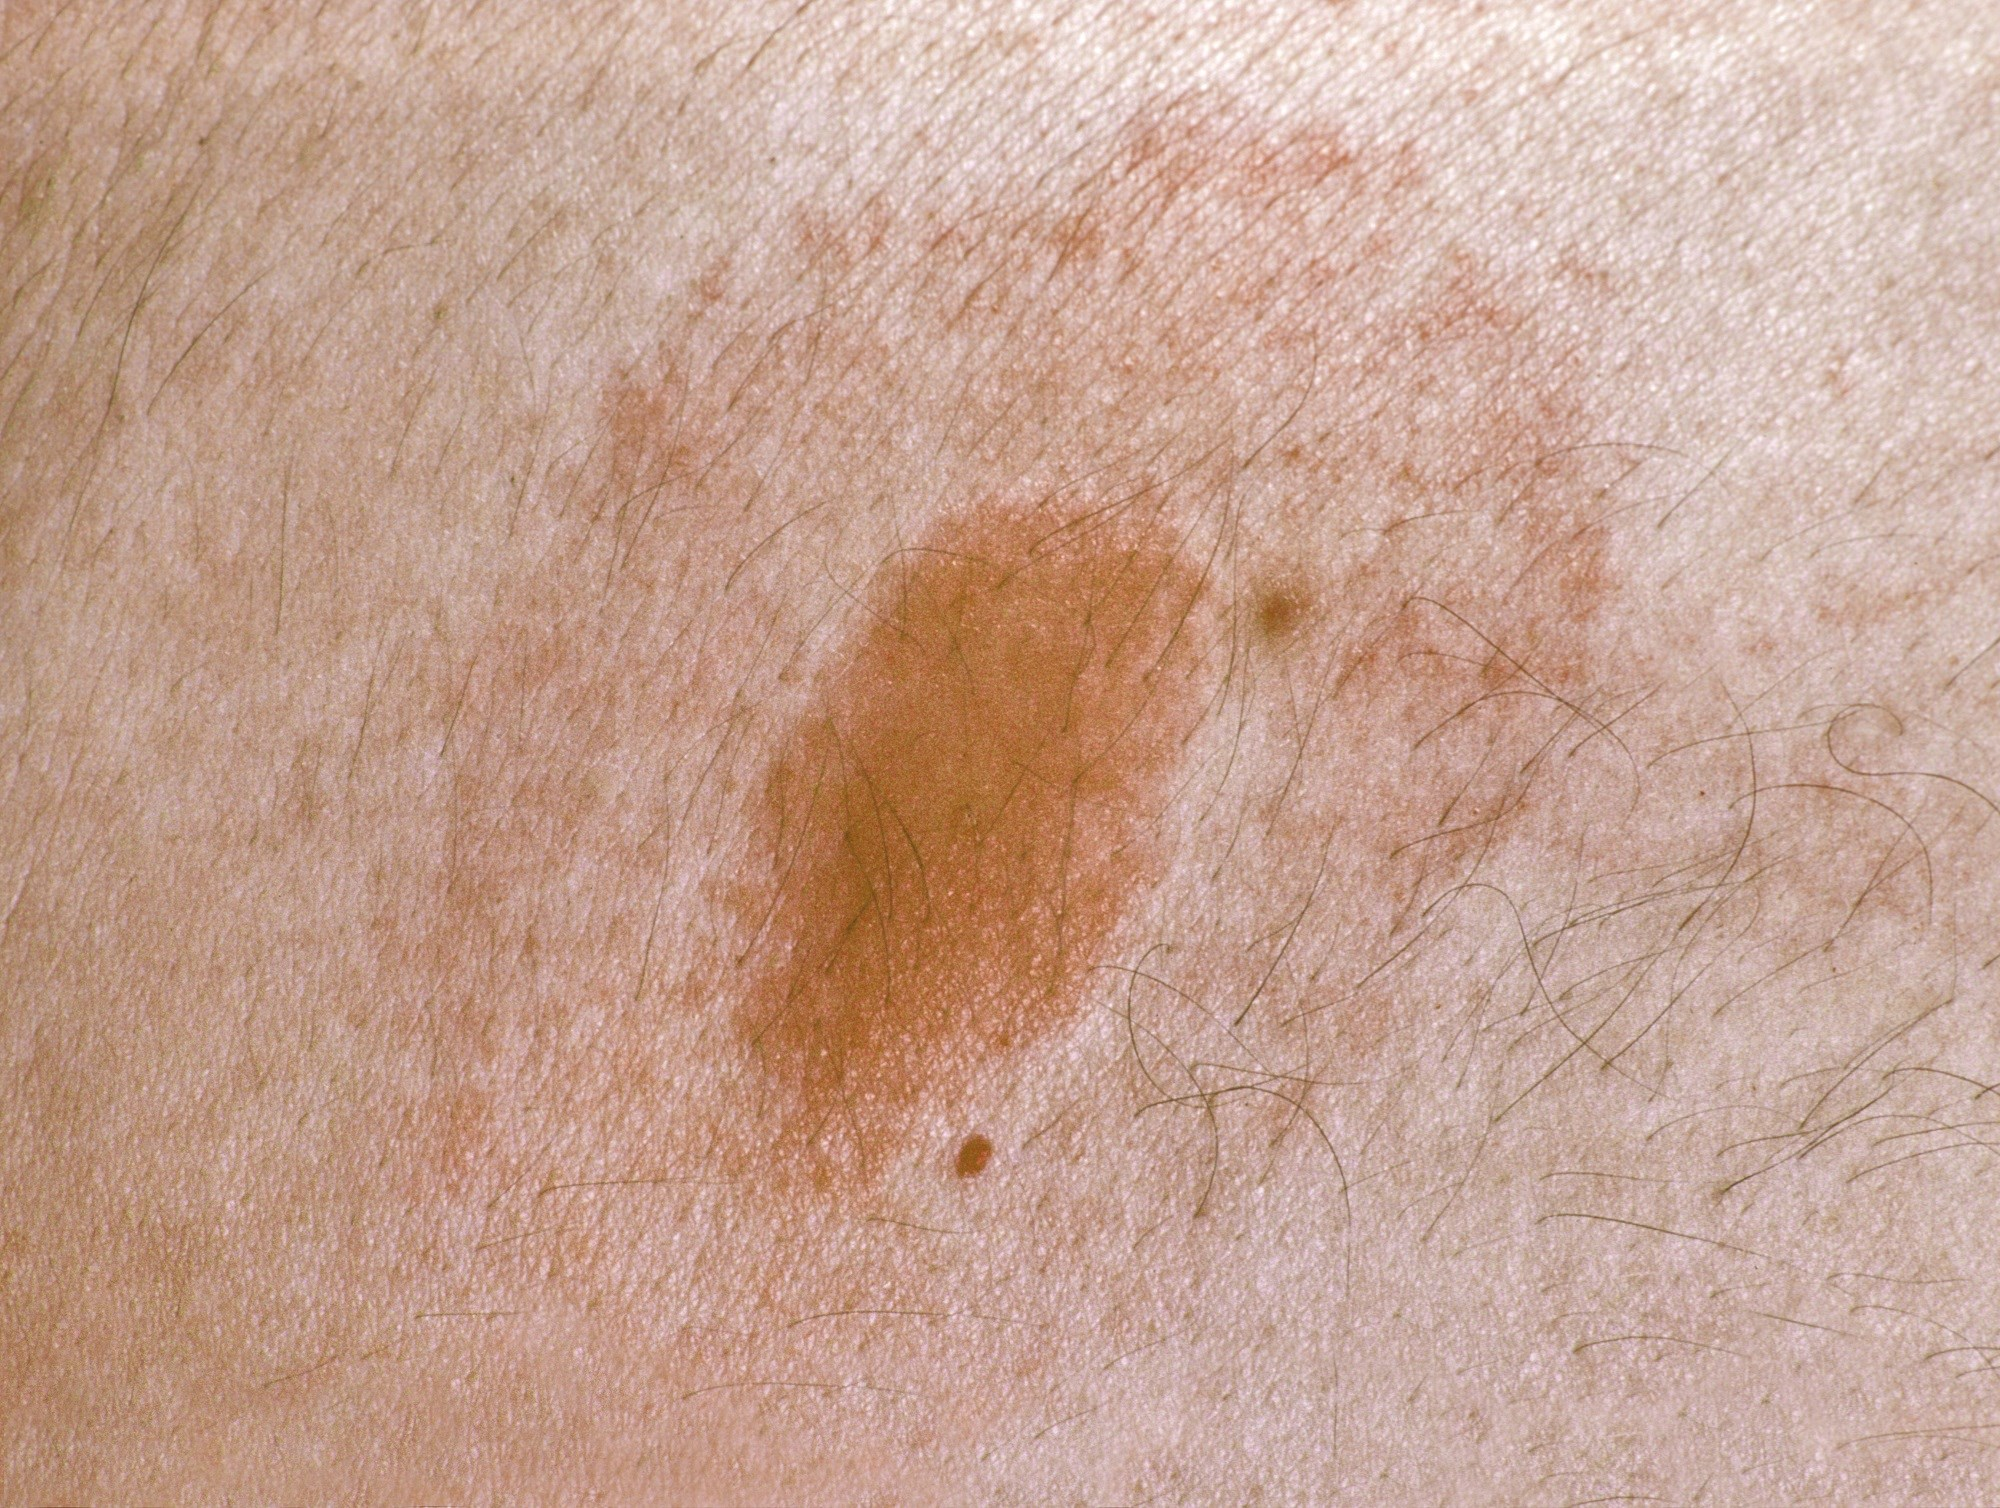 At baseline, more symptoms associated with Lyme borreliosis were reported by those with multiple erythema migrans than with solitary erythema migrans.